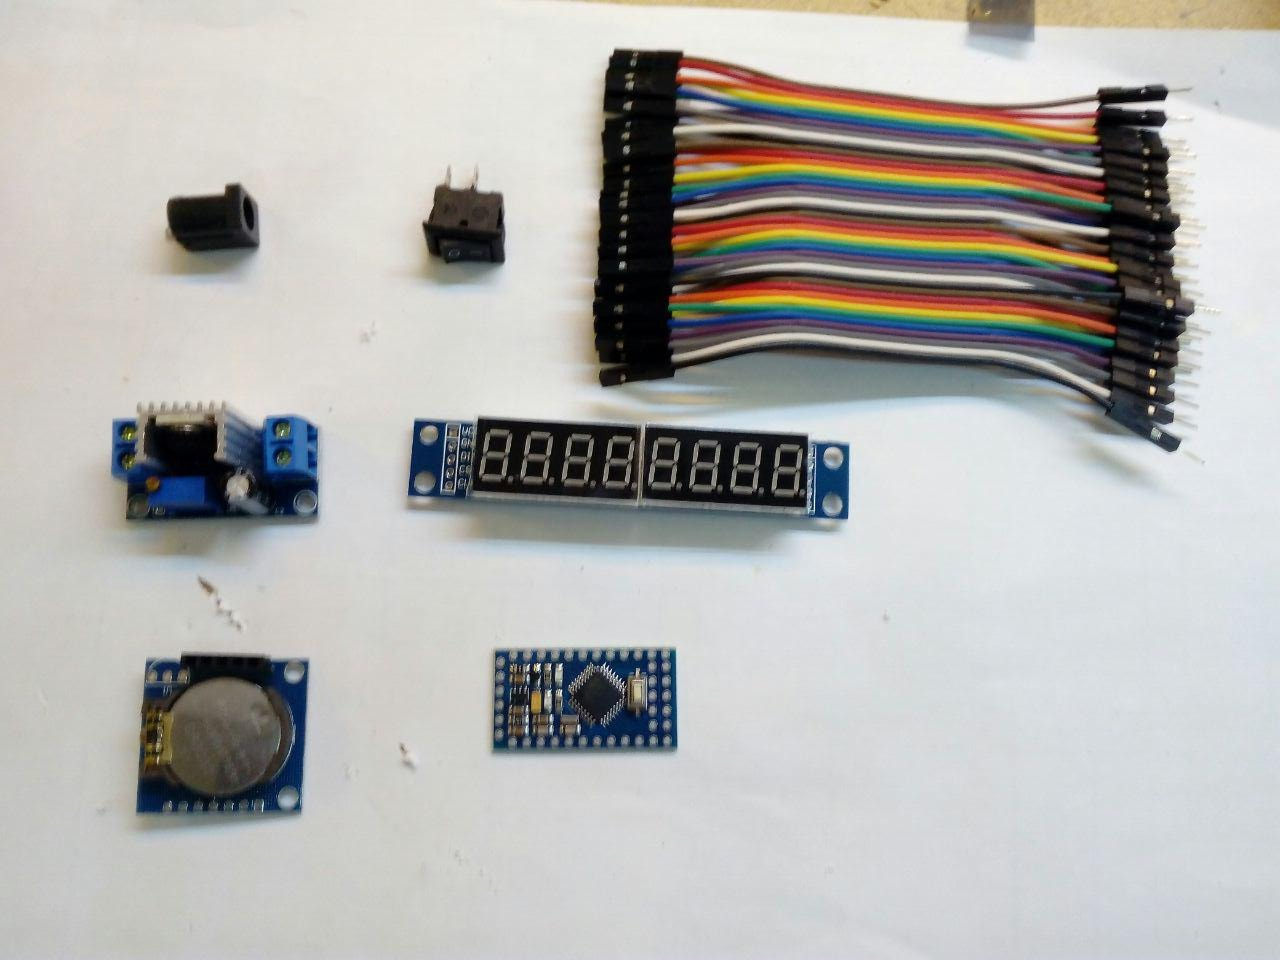 Picture of Components and Materials Needed in This Project